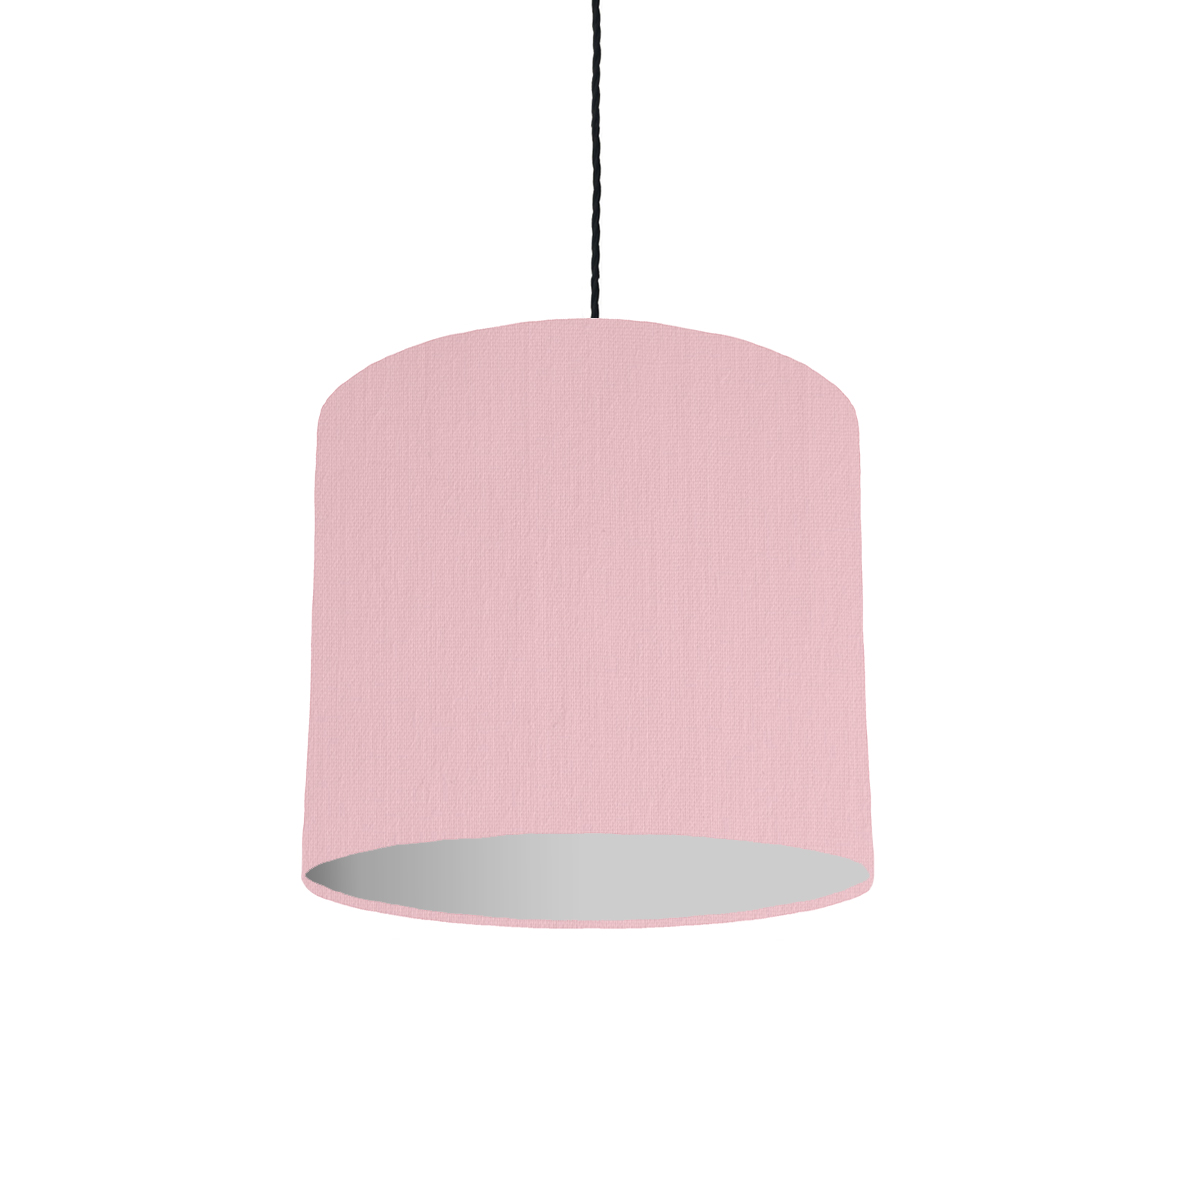 Pink and grey lampshade